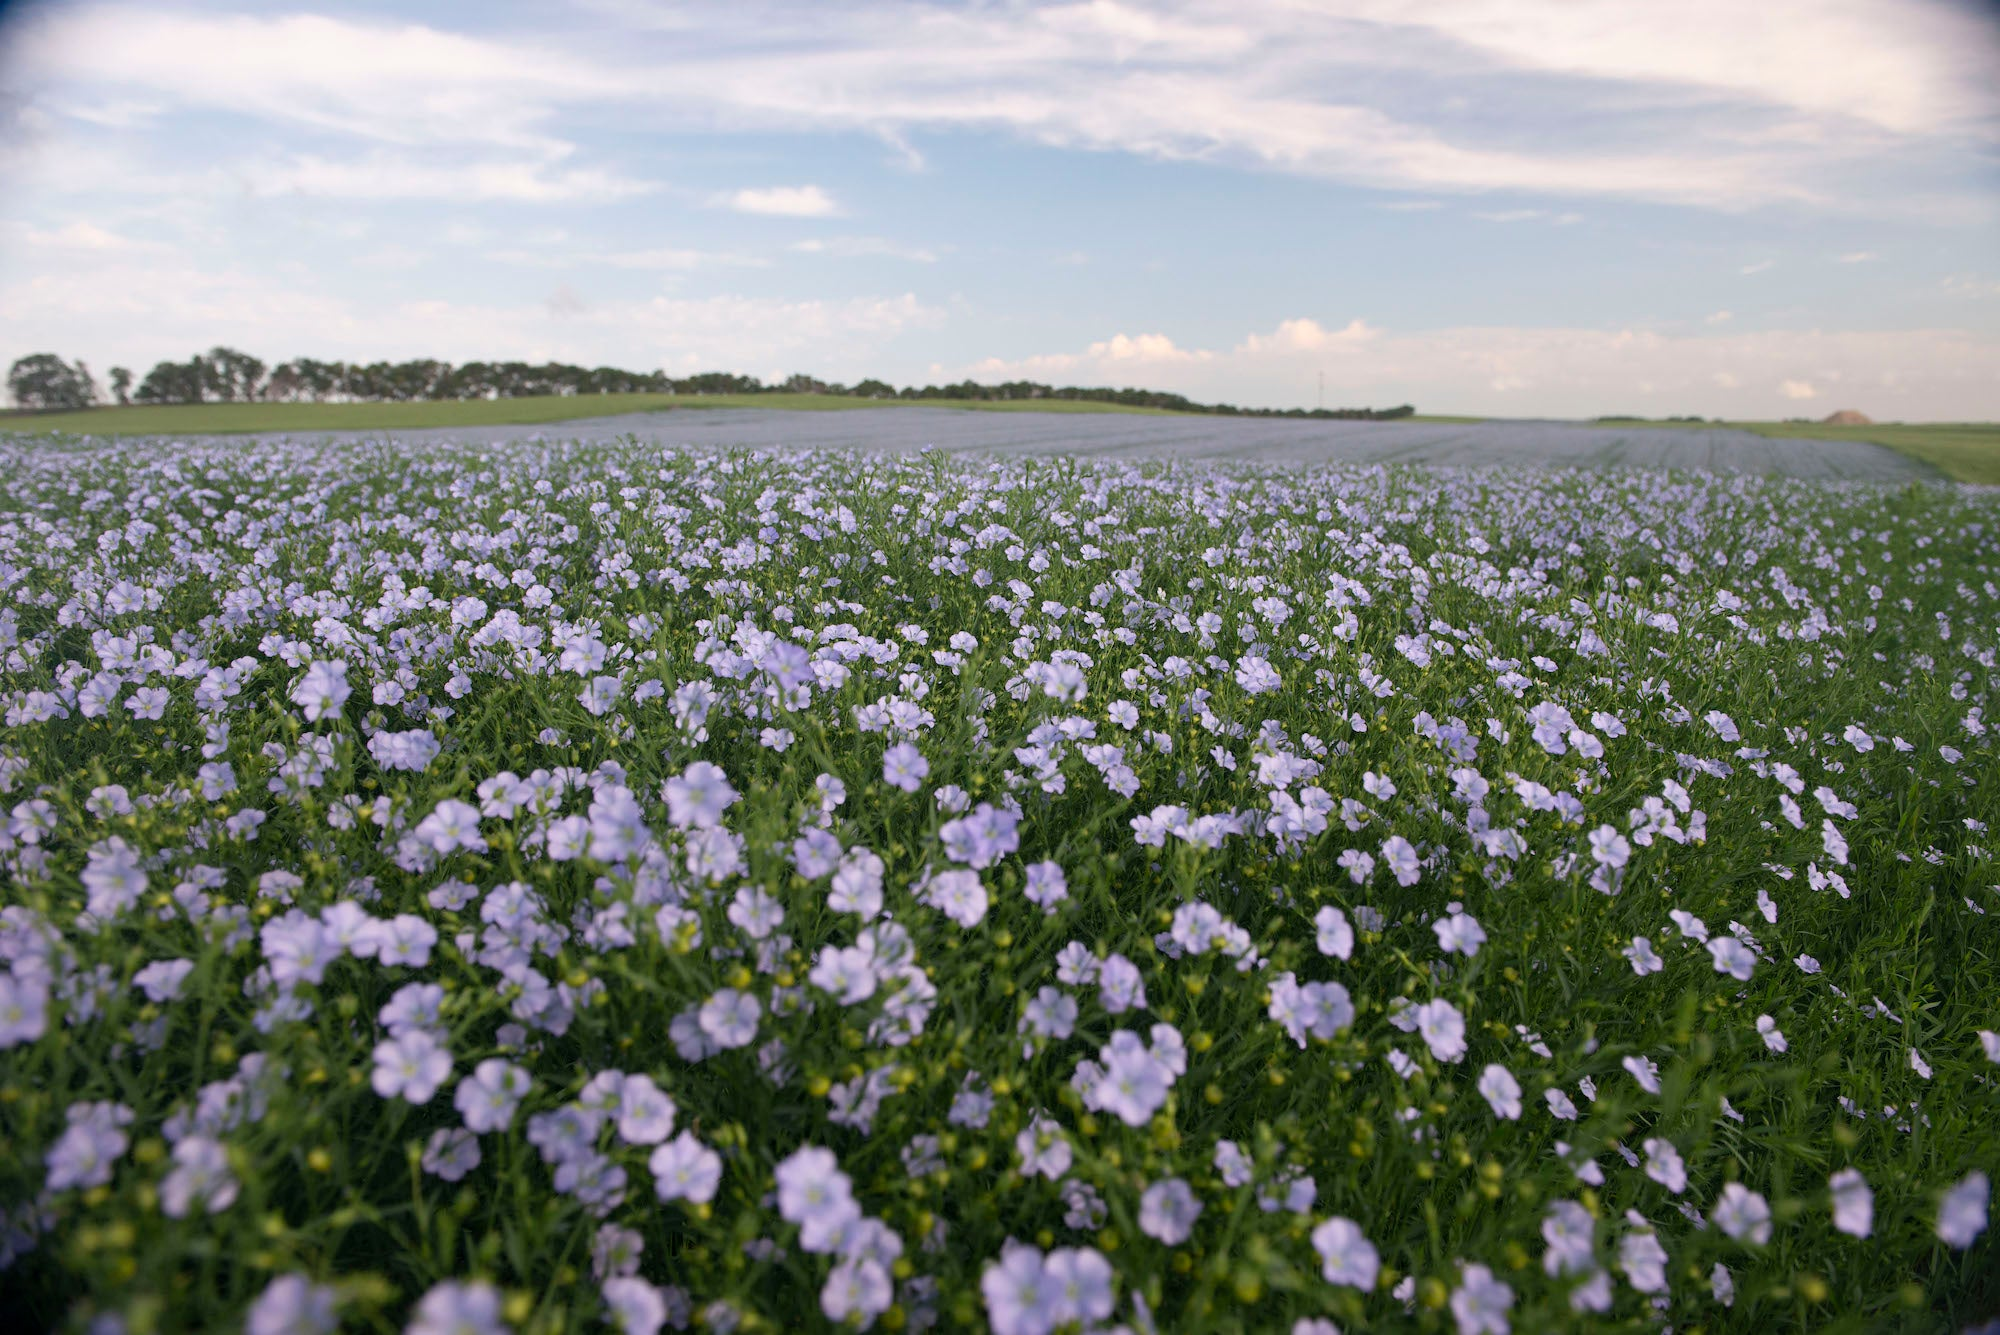 Image of flaxseed flowers in a field